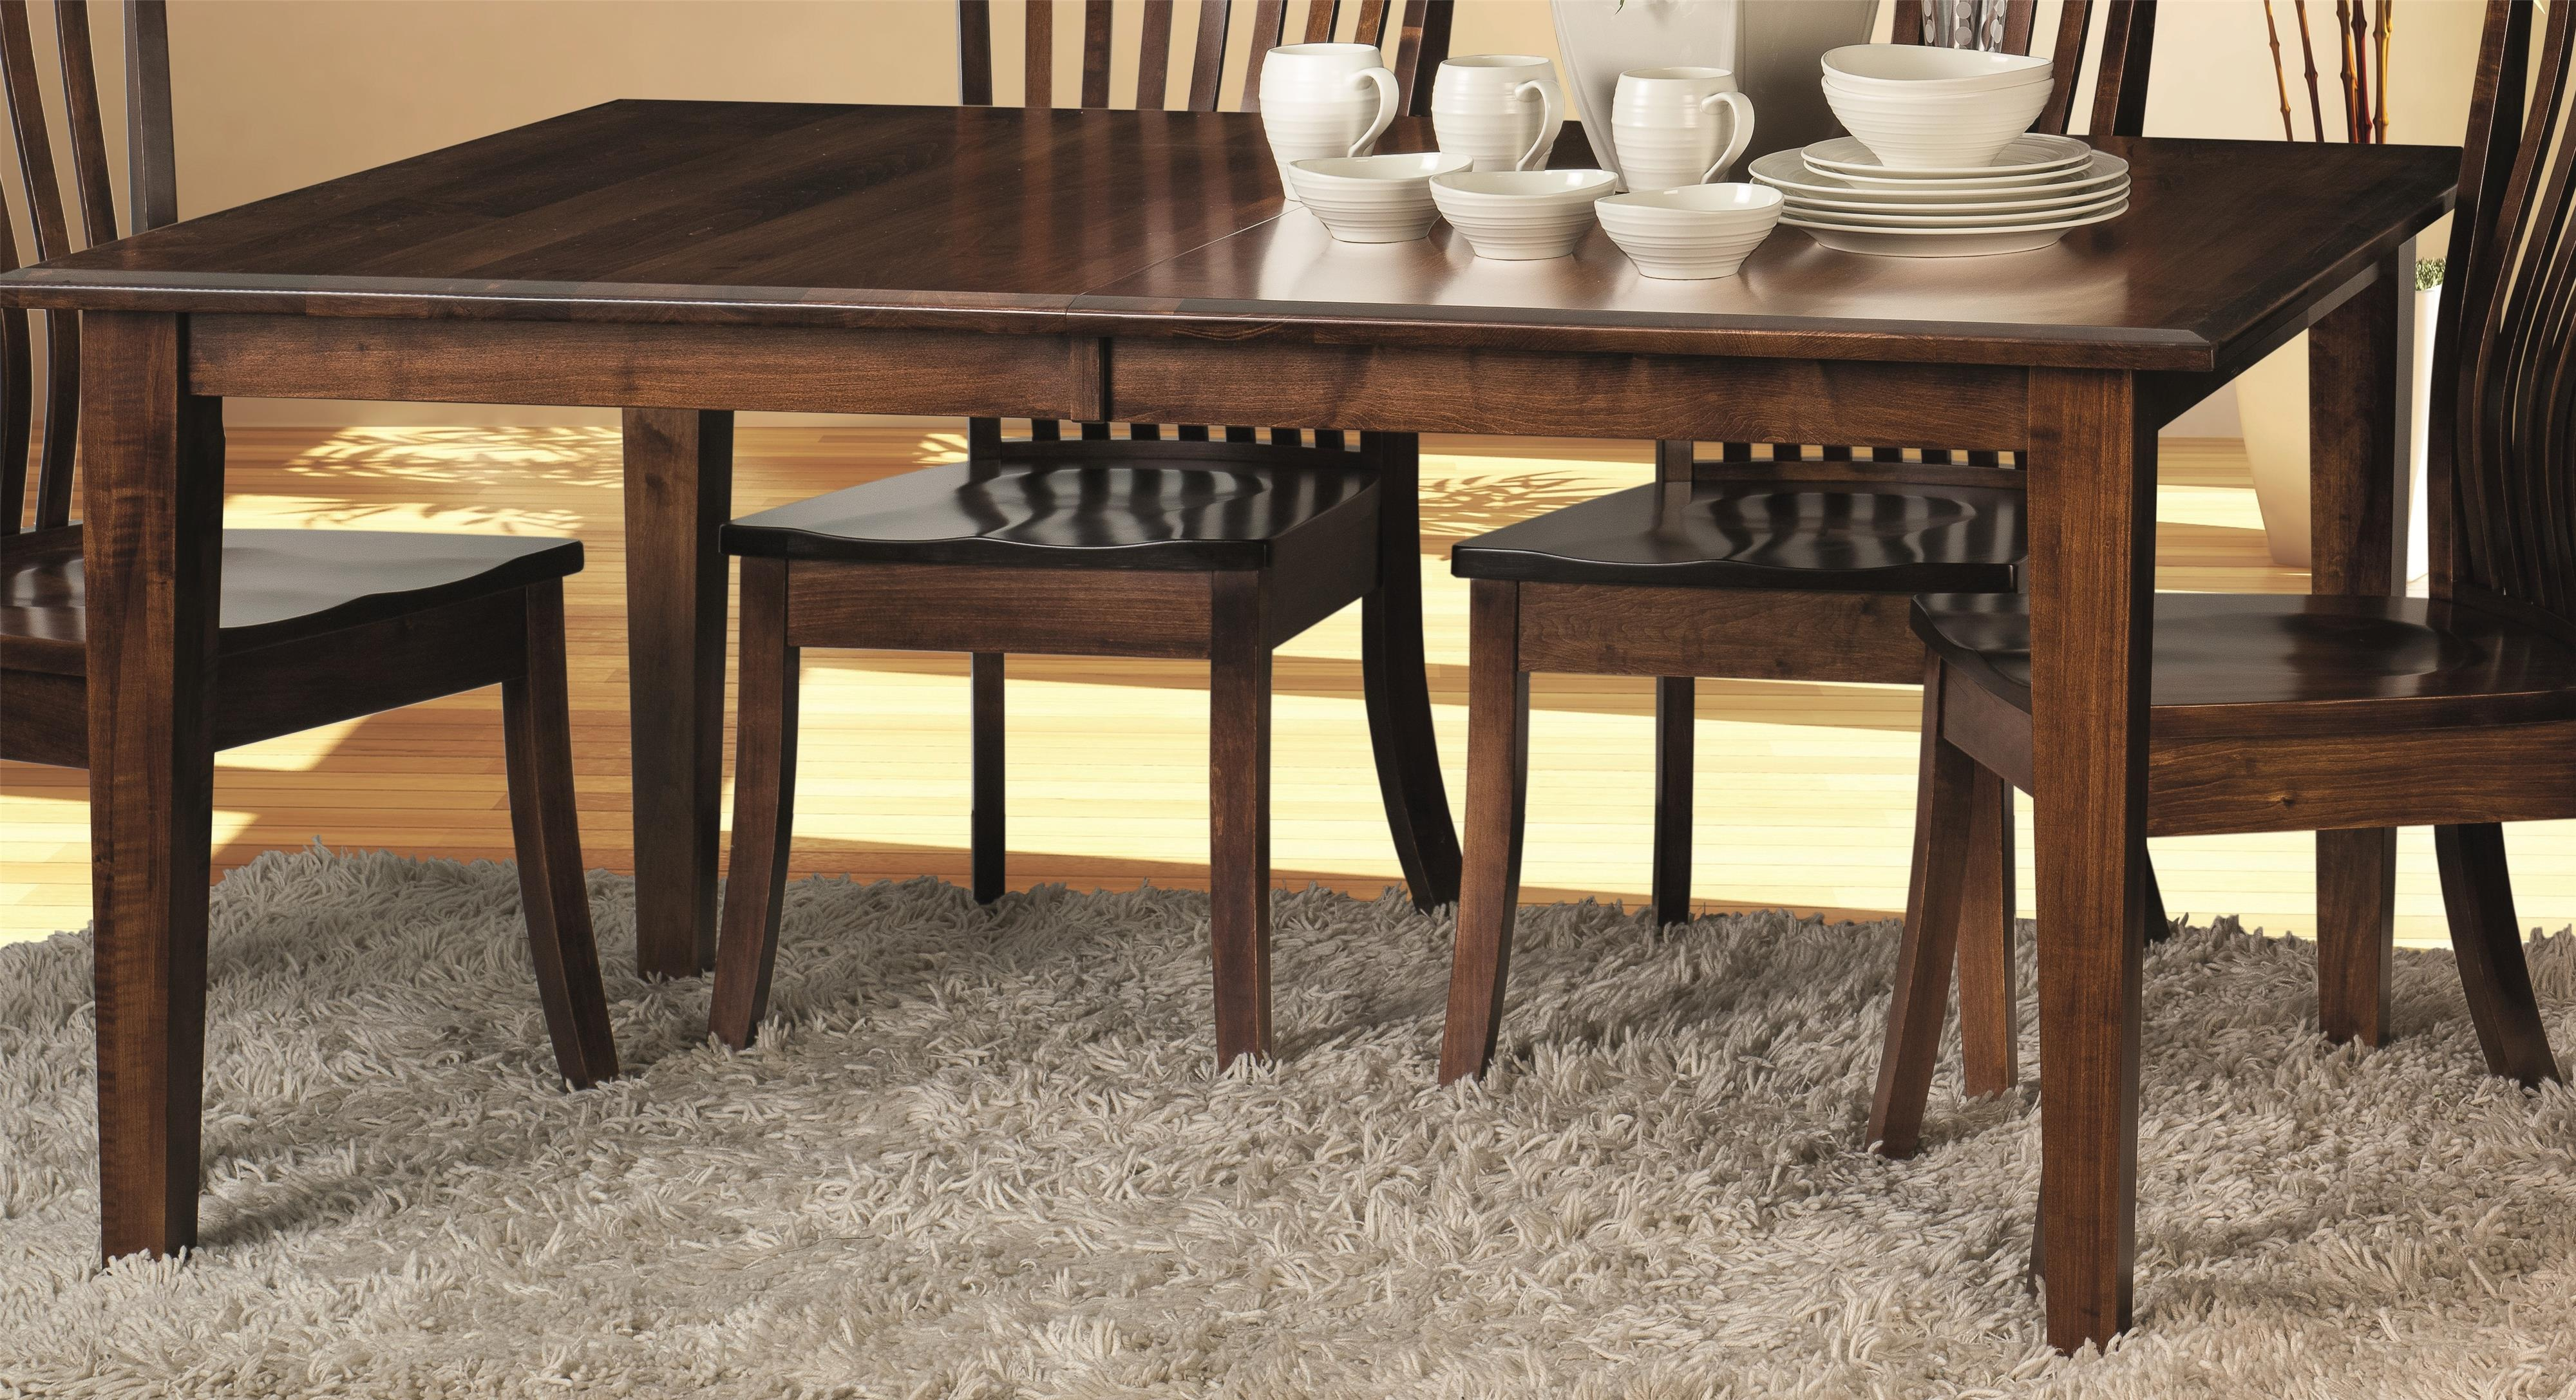 Morris Home Classic Classic Dining Table Top & Base - Item Number: CCTB4266-2LF-03-30-TM-EB-SS/L10